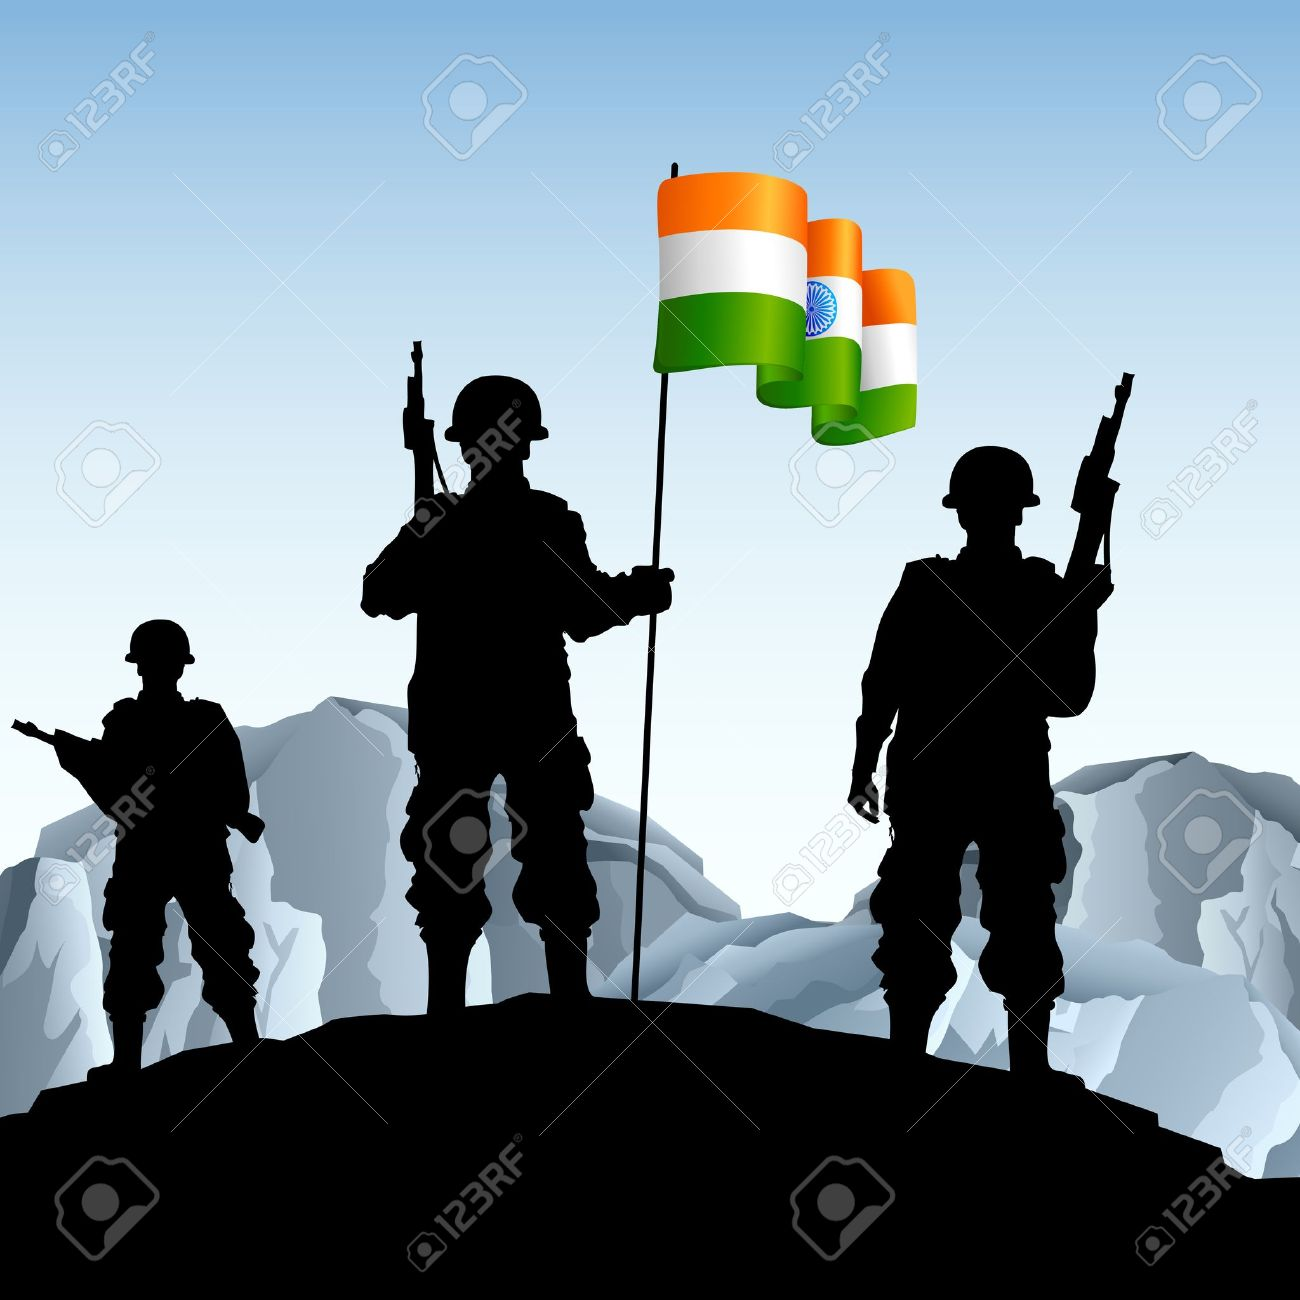 Indian clipart salute Illustration Indian  and the